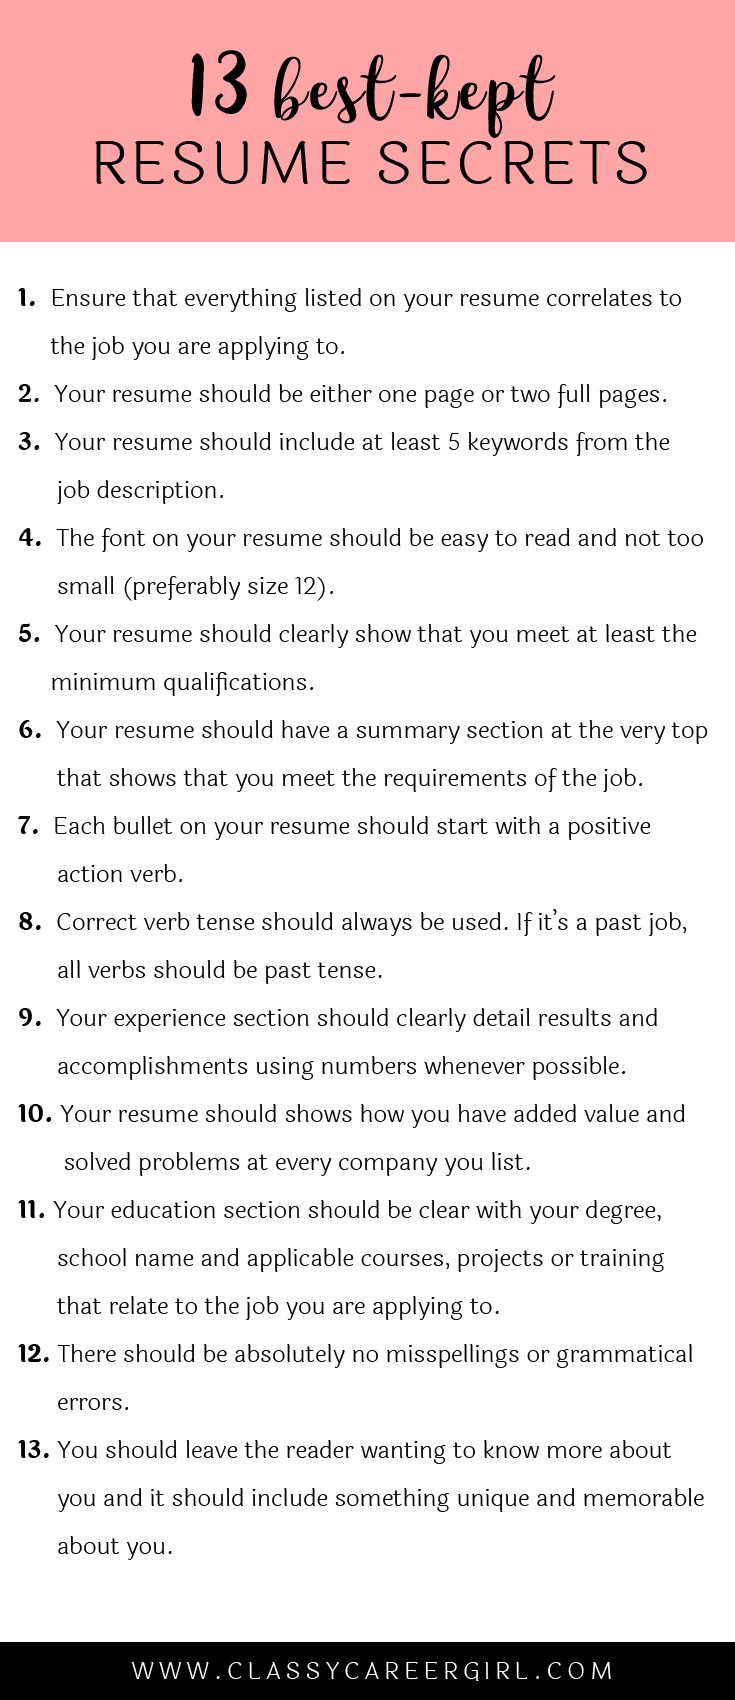 Opposenewapstandardsus  Pleasant  Ideas About Resume On Pinterest  Cv Format Resume Cv And  With Marvelous Some Hiring Managers Will Toss Your Resume Out If You Dont Know These  With Agreeable Inroads Resume Template Also How To Write Resume With No Experience In Addition Sample Resume With References And Development Director Resume As Well As Business Resume Samples Additionally Sales Associate Job Duties For Resume From Pinterestcom With Opposenewapstandardsus  Marvelous  Ideas About Resume On Pinterest  Cv Format Resume Cv And  With Agreeable Some Hiring Managers Will Toss Your Resume Out If You Dont Know These  And Pleasant Inroads Resume Template Also How To Write Resume With No Experience In Addition Sample Resume With References From Pinterestcom